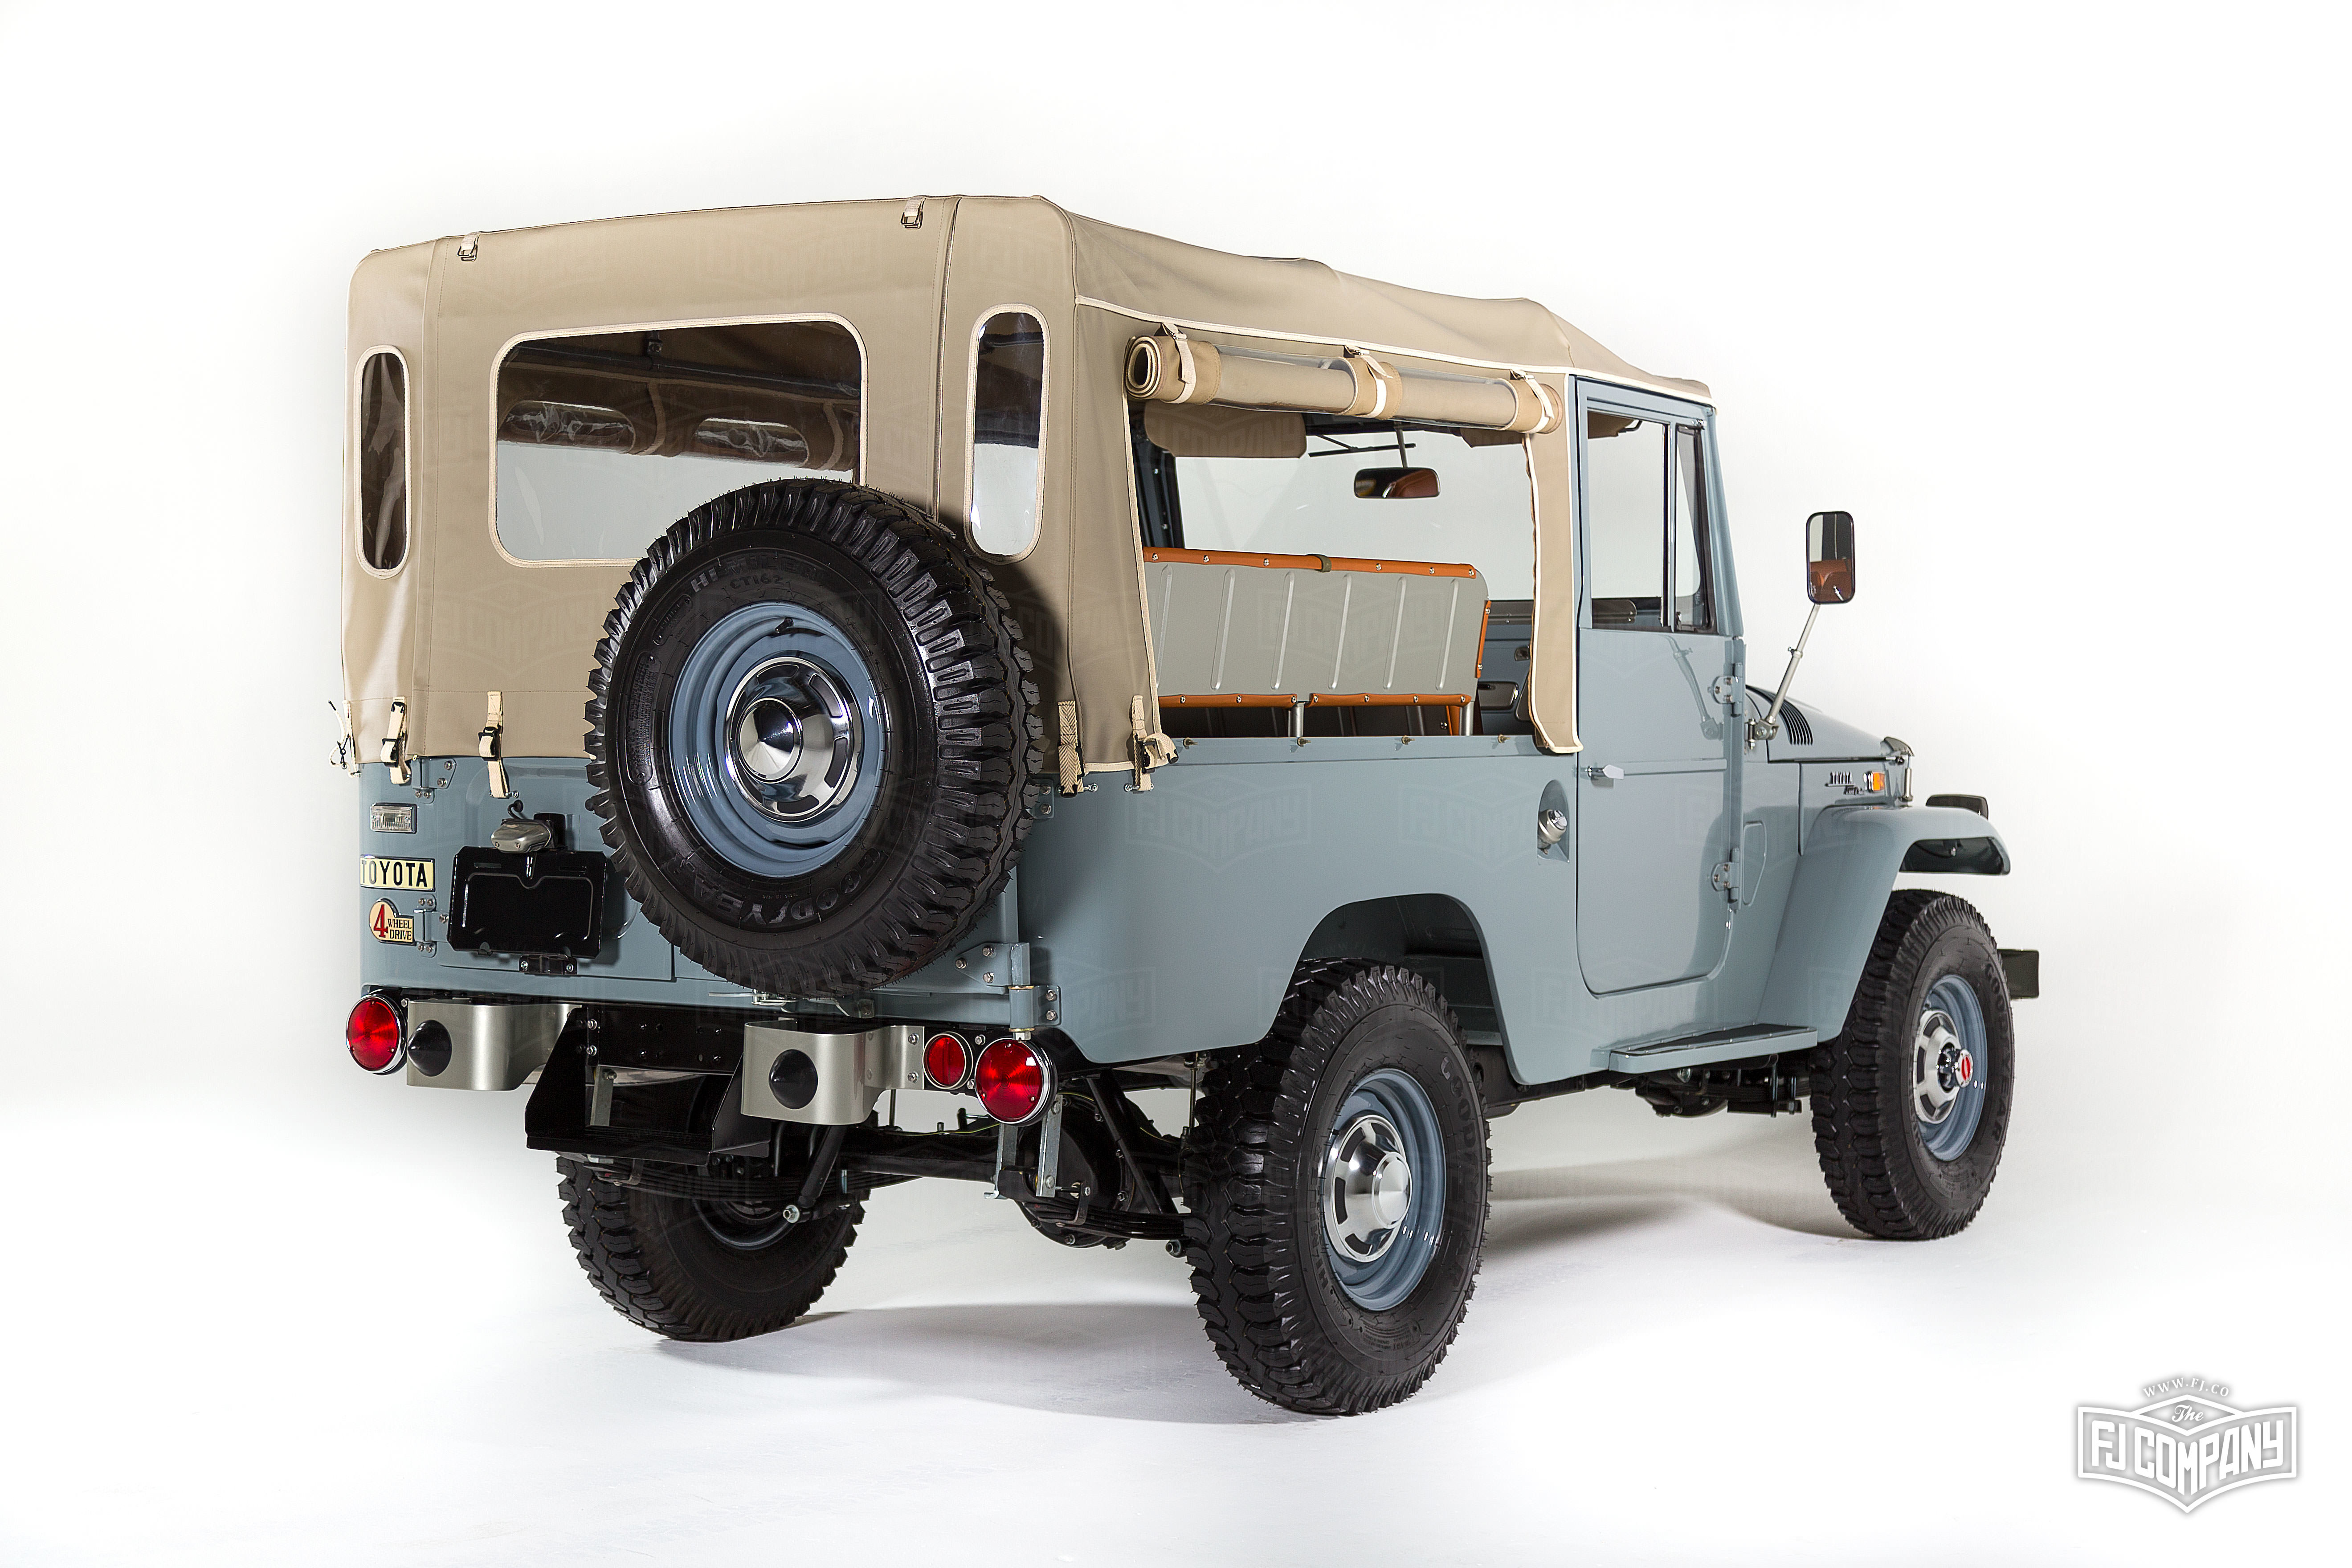 Priest Owned Toyota Land Cruiser Fj Fetches At Auction on Vintage Toyota Land Cruiser